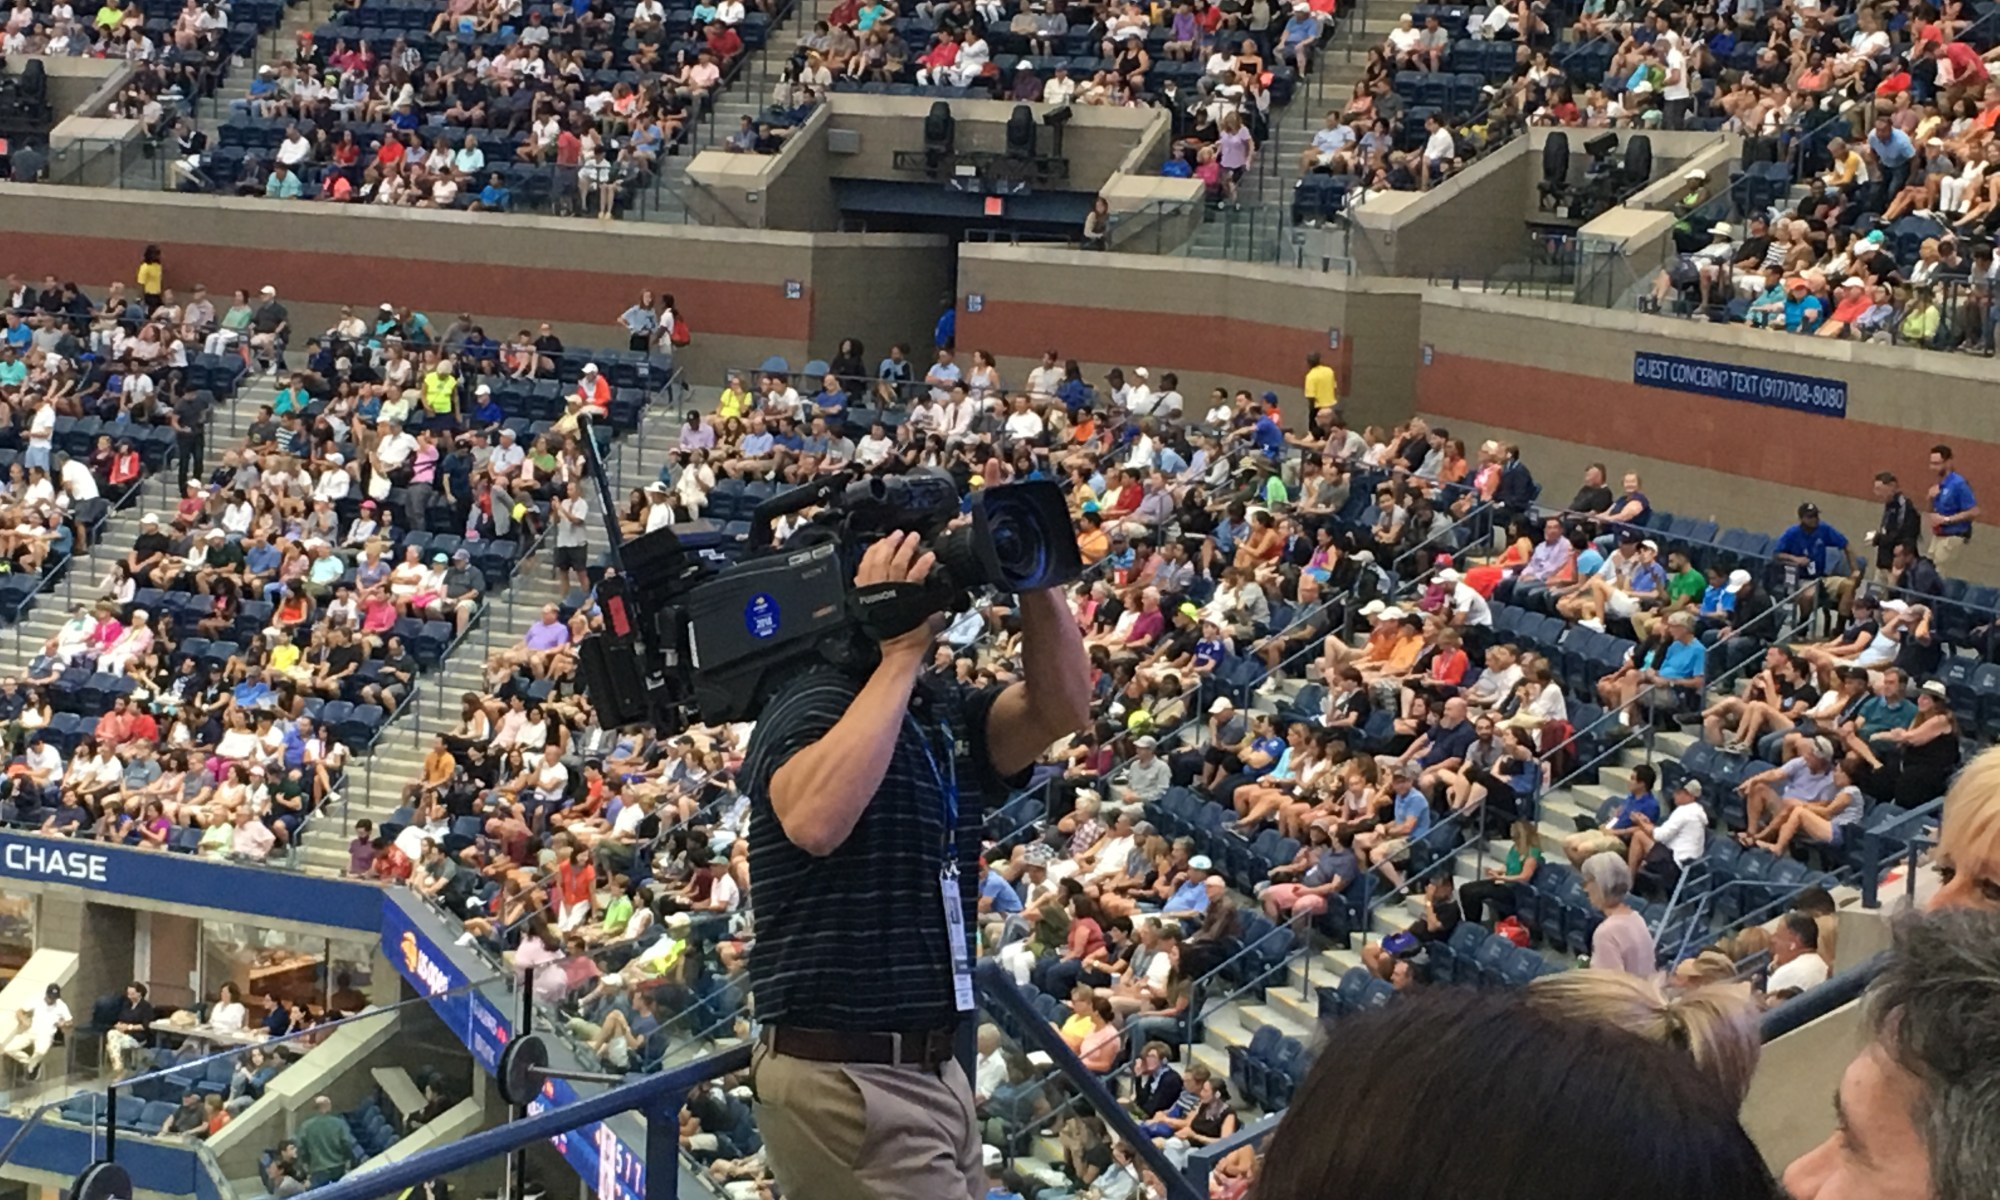 Videographer at the U.S. open with a live camera shooting the audience.